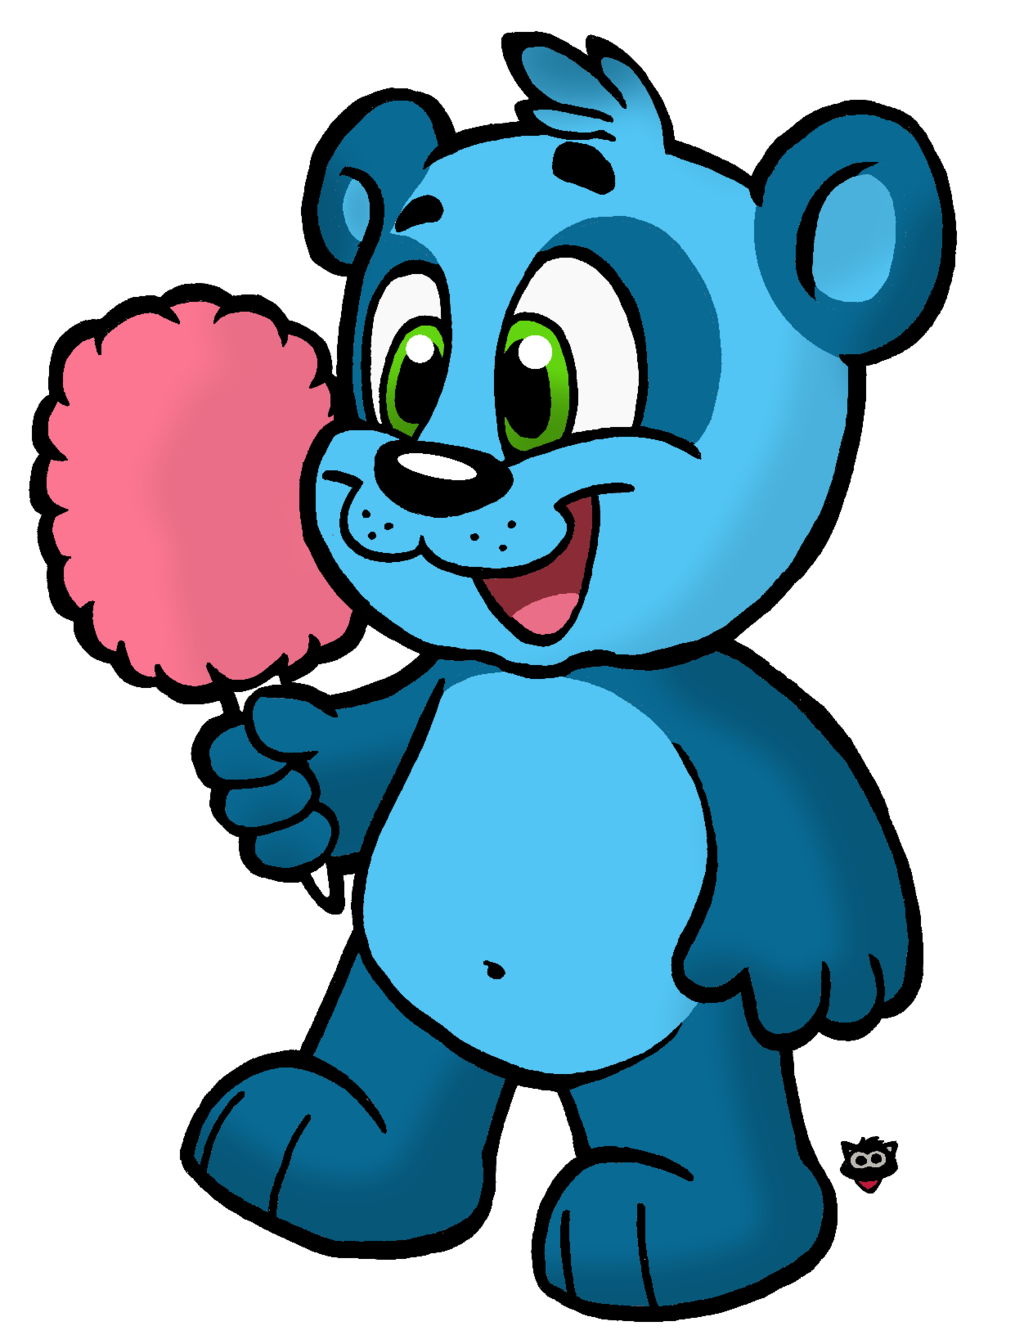 Blue panda png. Cotton candy by cartcoon